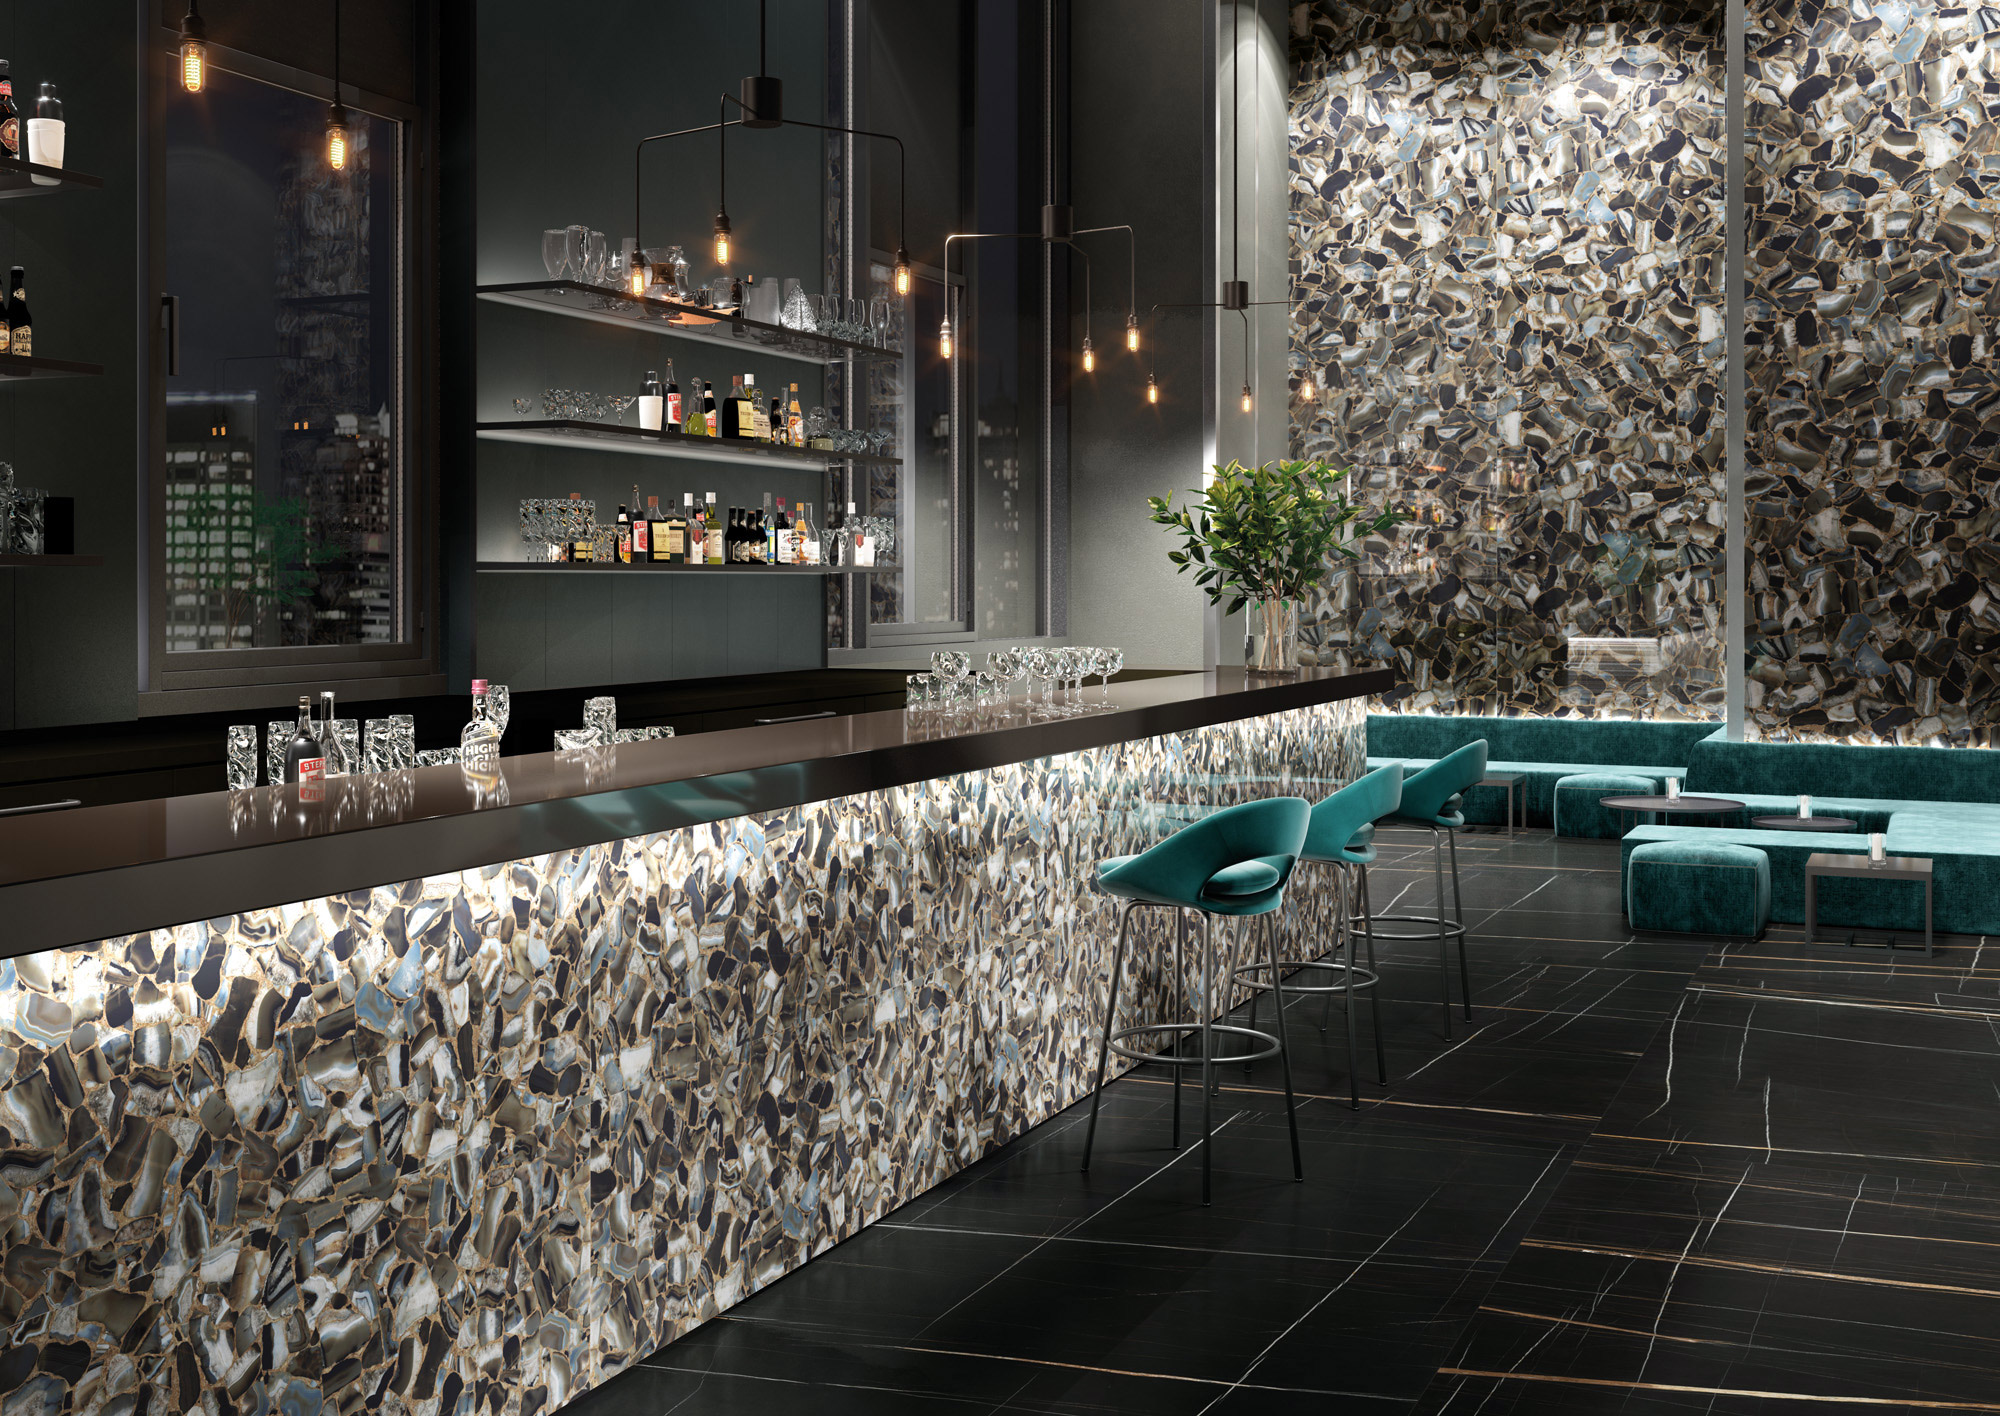 porcelain tile images: Gem Stone range high quality photo